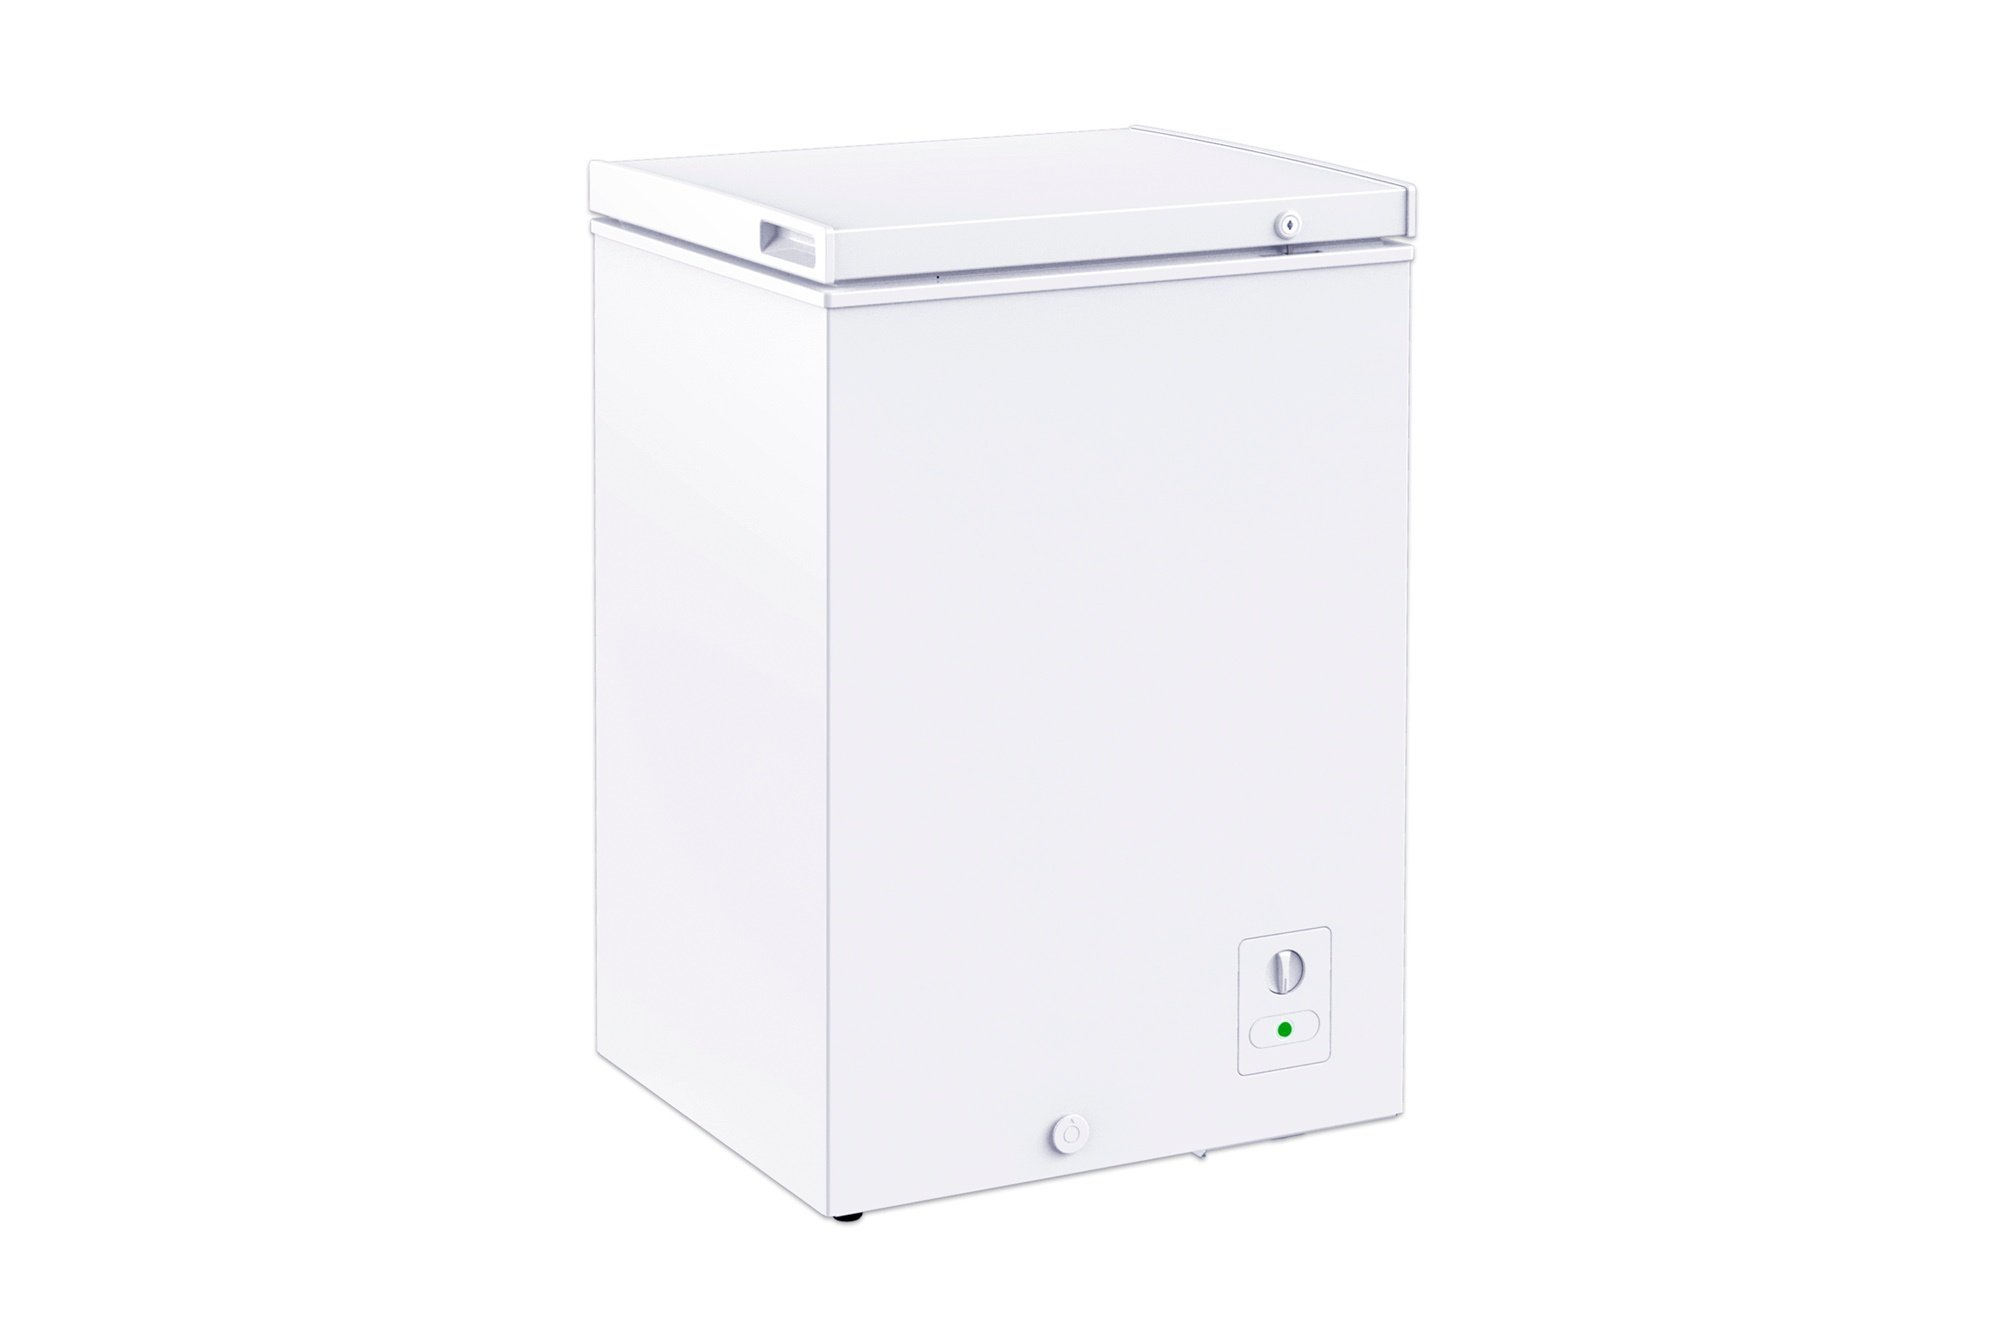 Yeobuild HomeStore Tecno TCF 138R 100L Chest Freezer